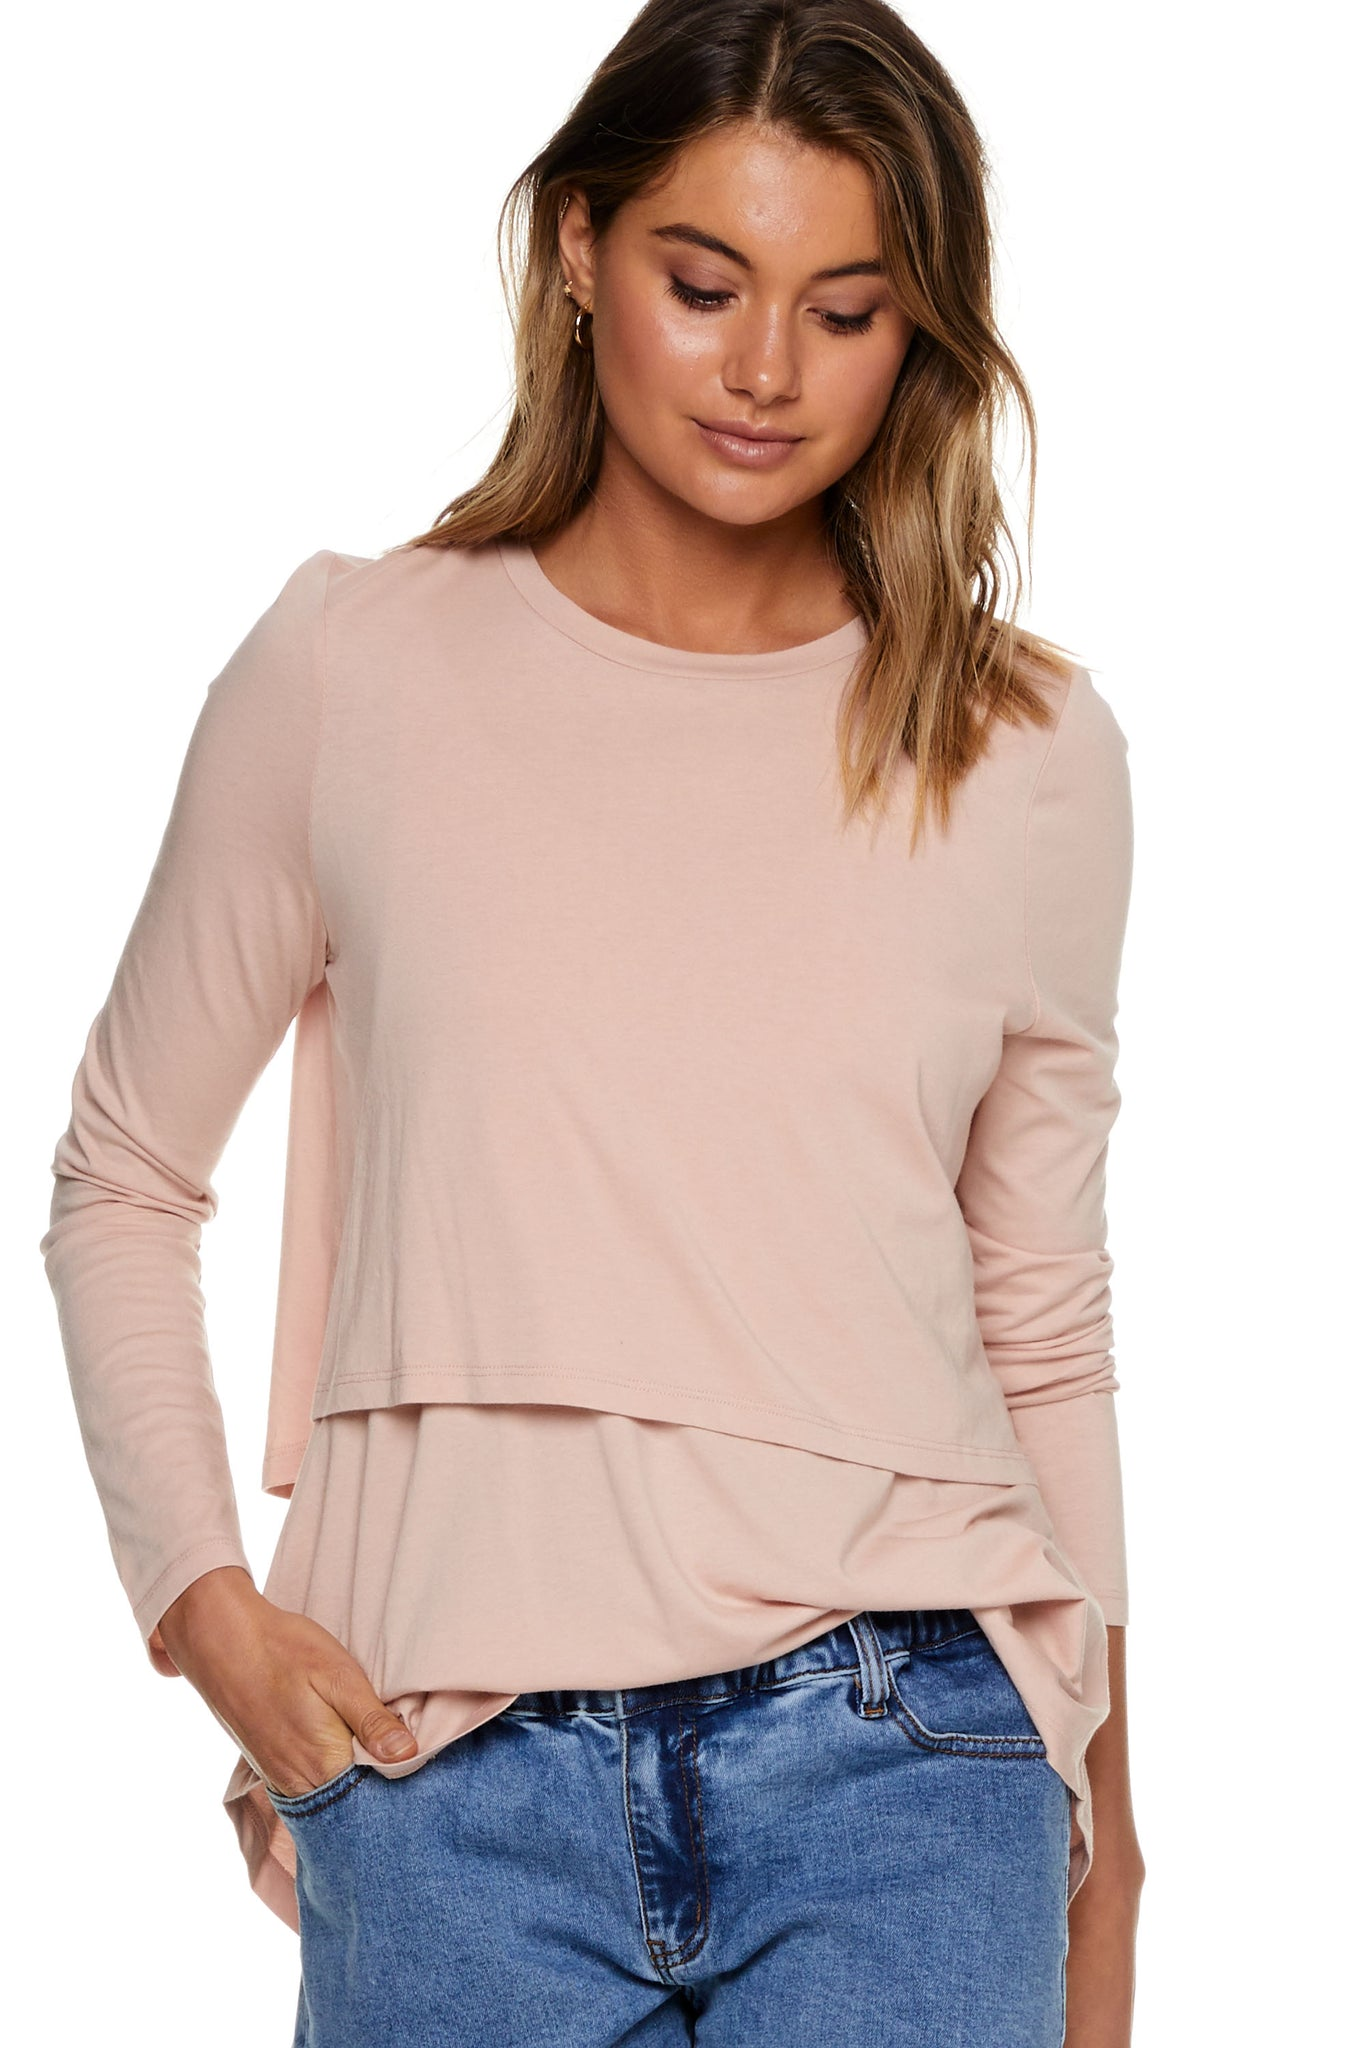 Maternity and Nursing Long Sleeve Top Pink Image 10